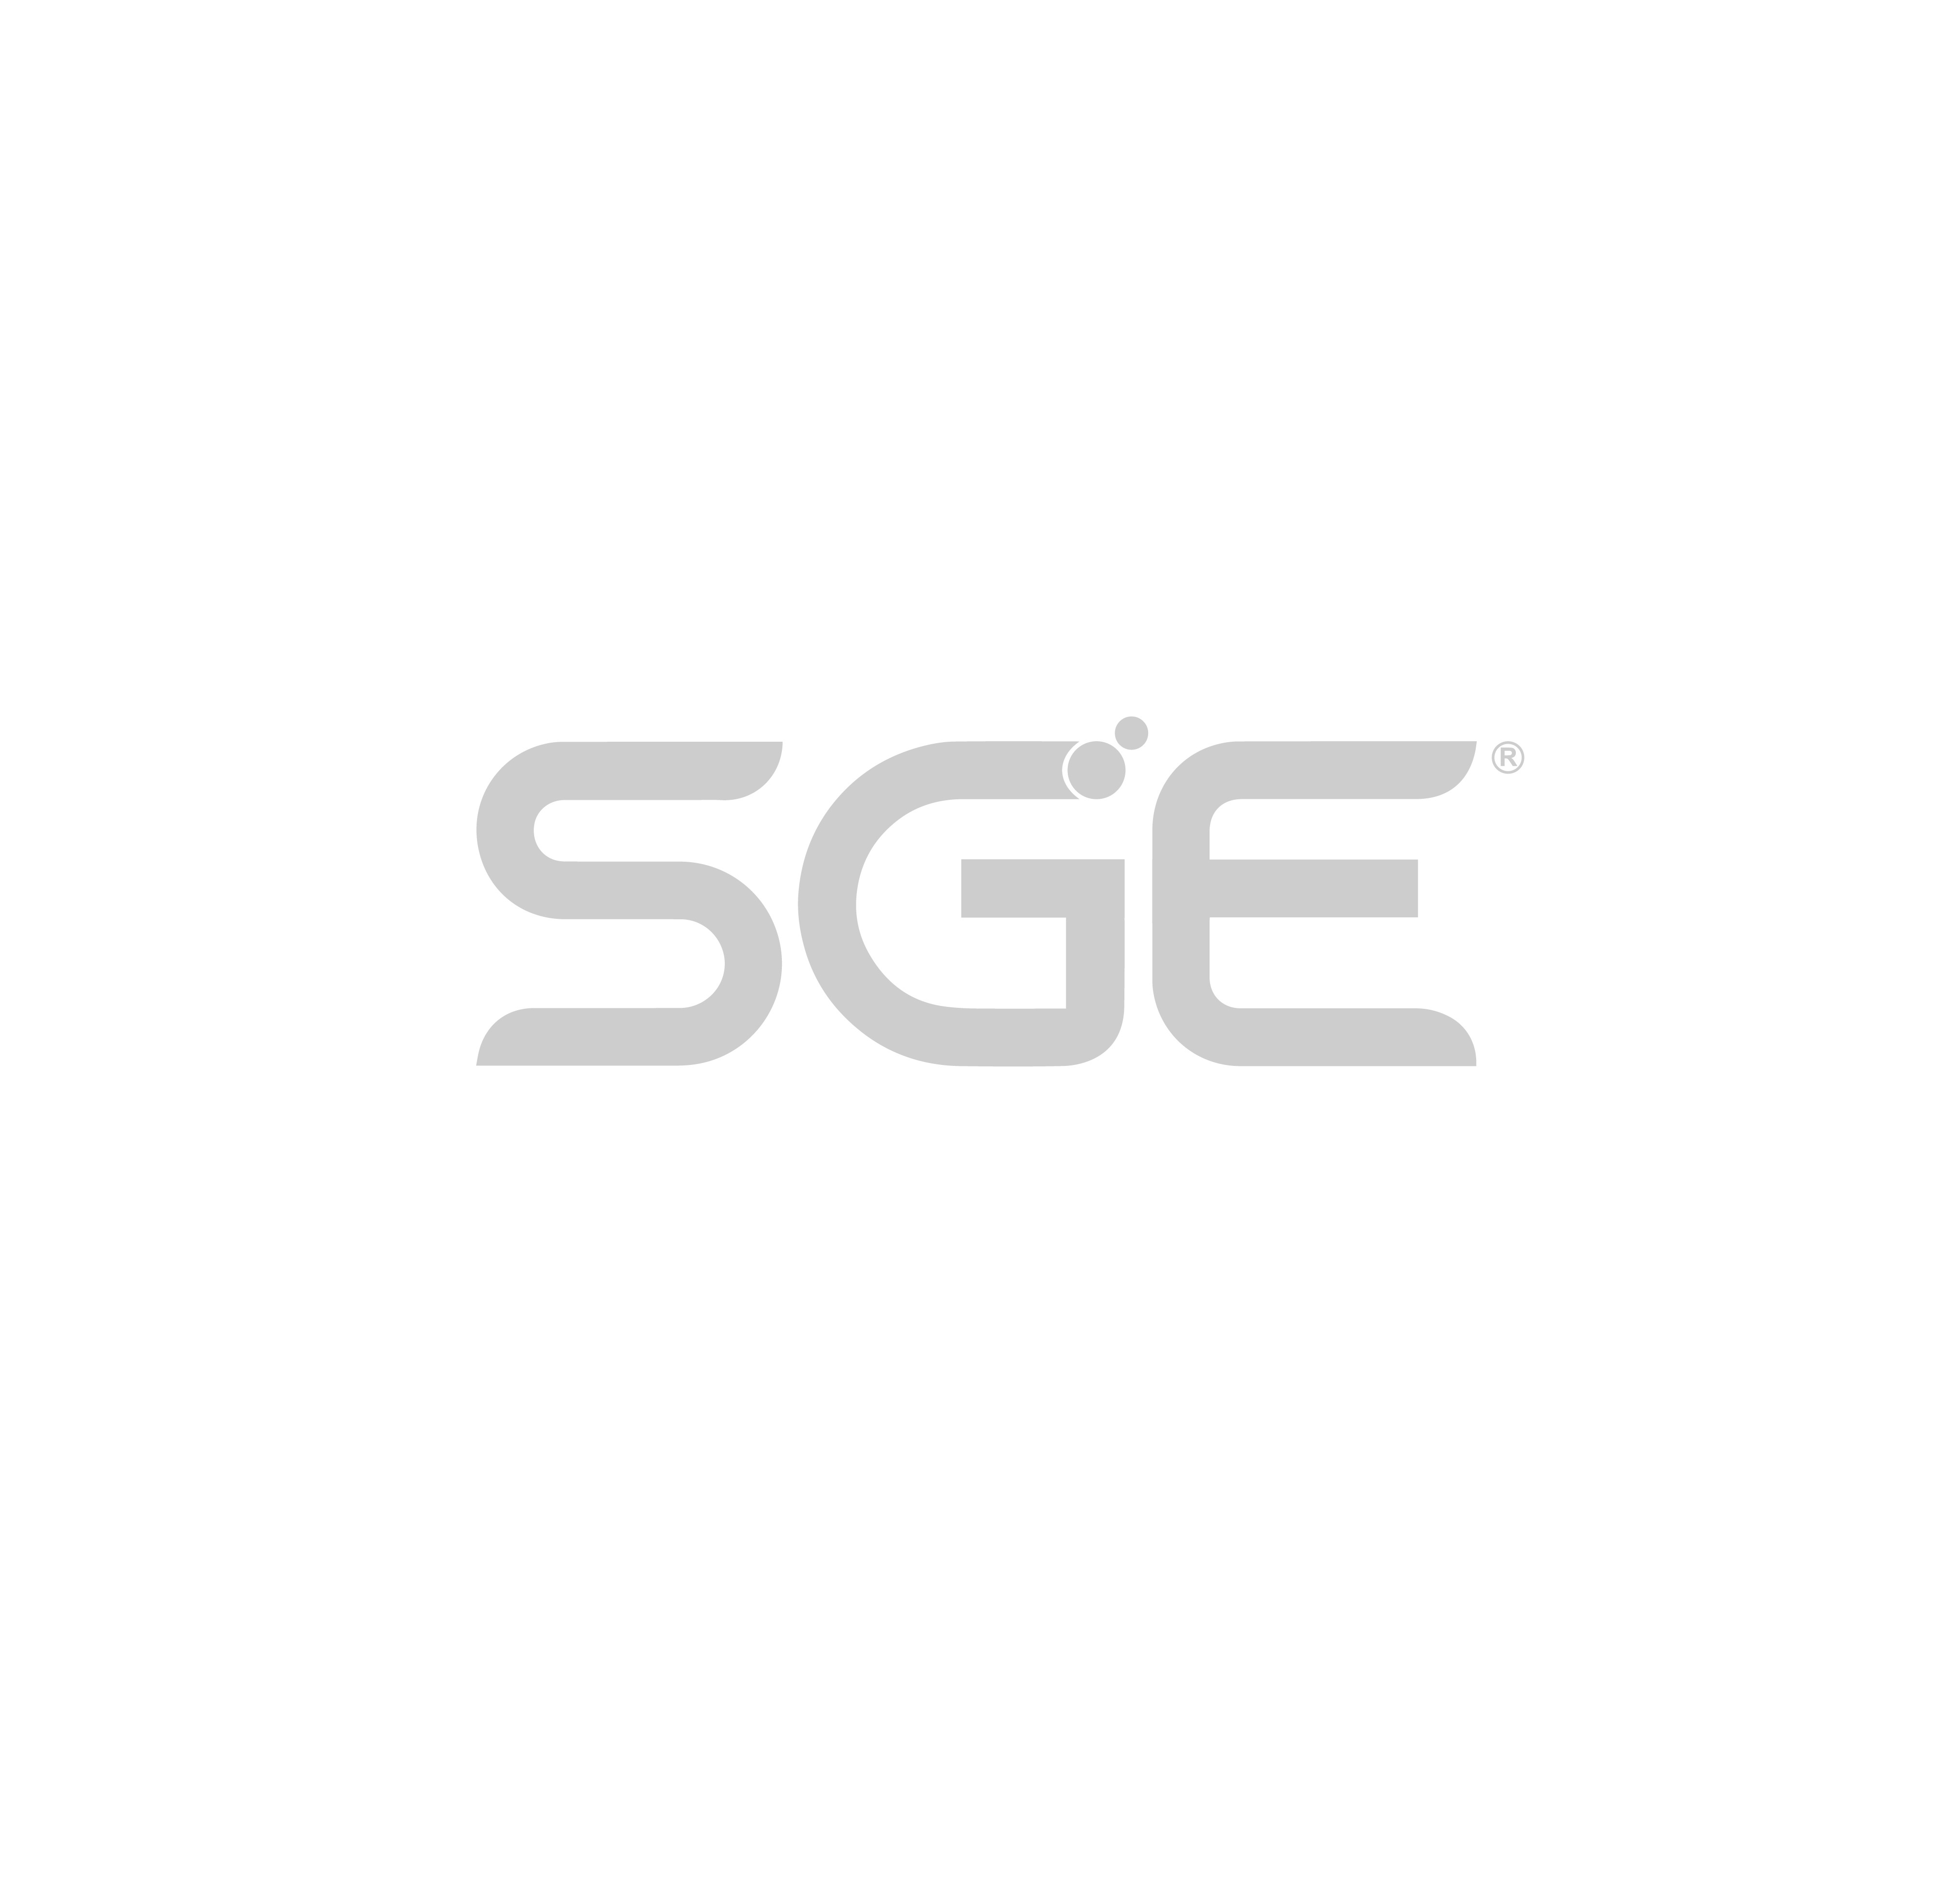 Led Cob 3W Blanco Frio 127Vca 30Ma. 270Lm-300Lm 6000-6500K 26.5Mm